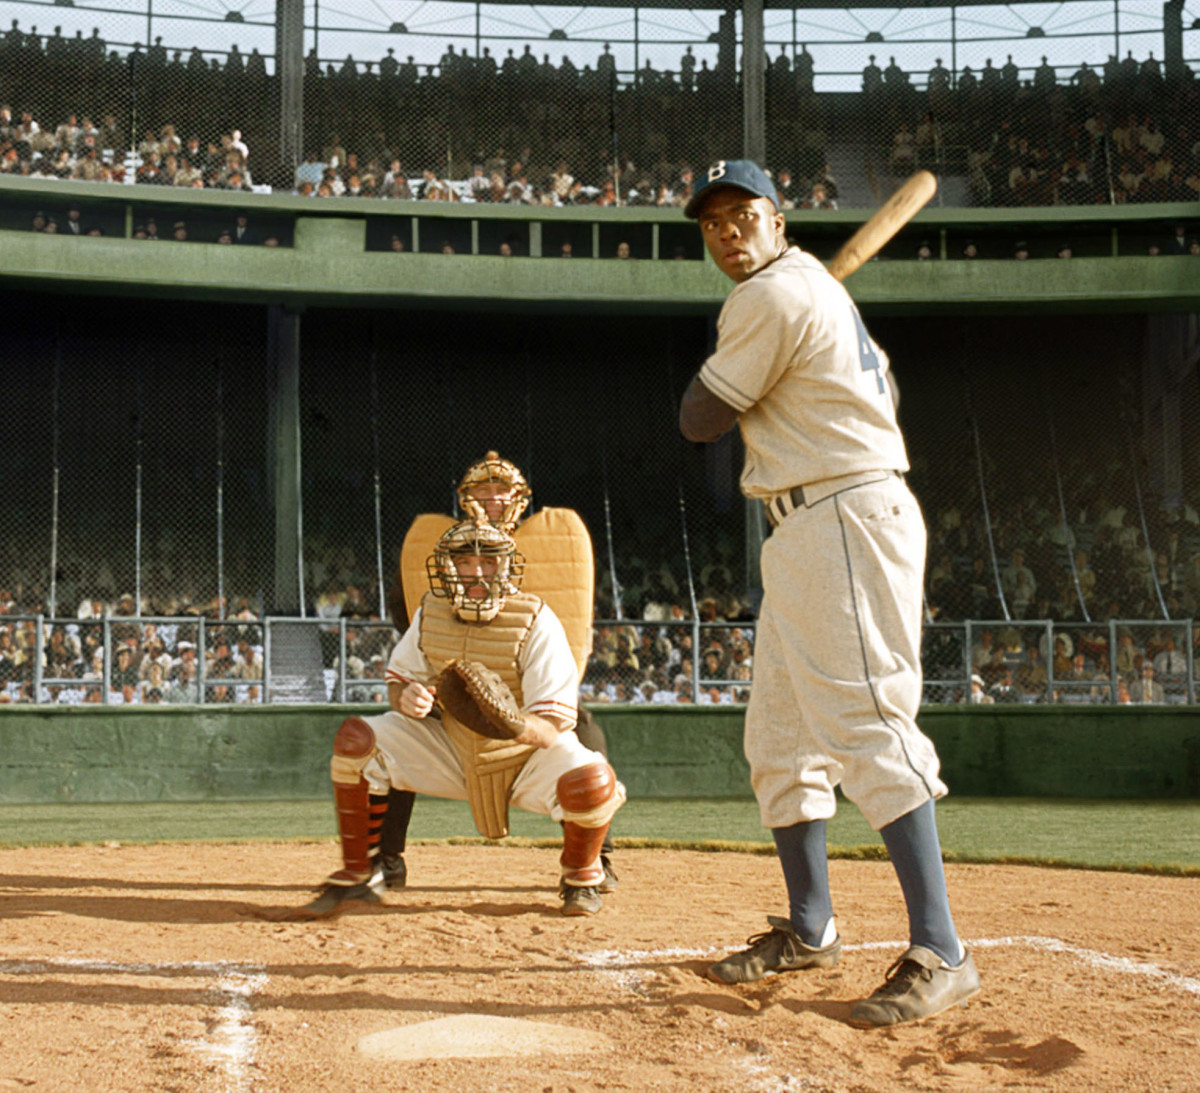 Baseball Coaching Tips: Mind Games Hitters And Pitchers Play To Annoy Each Other!